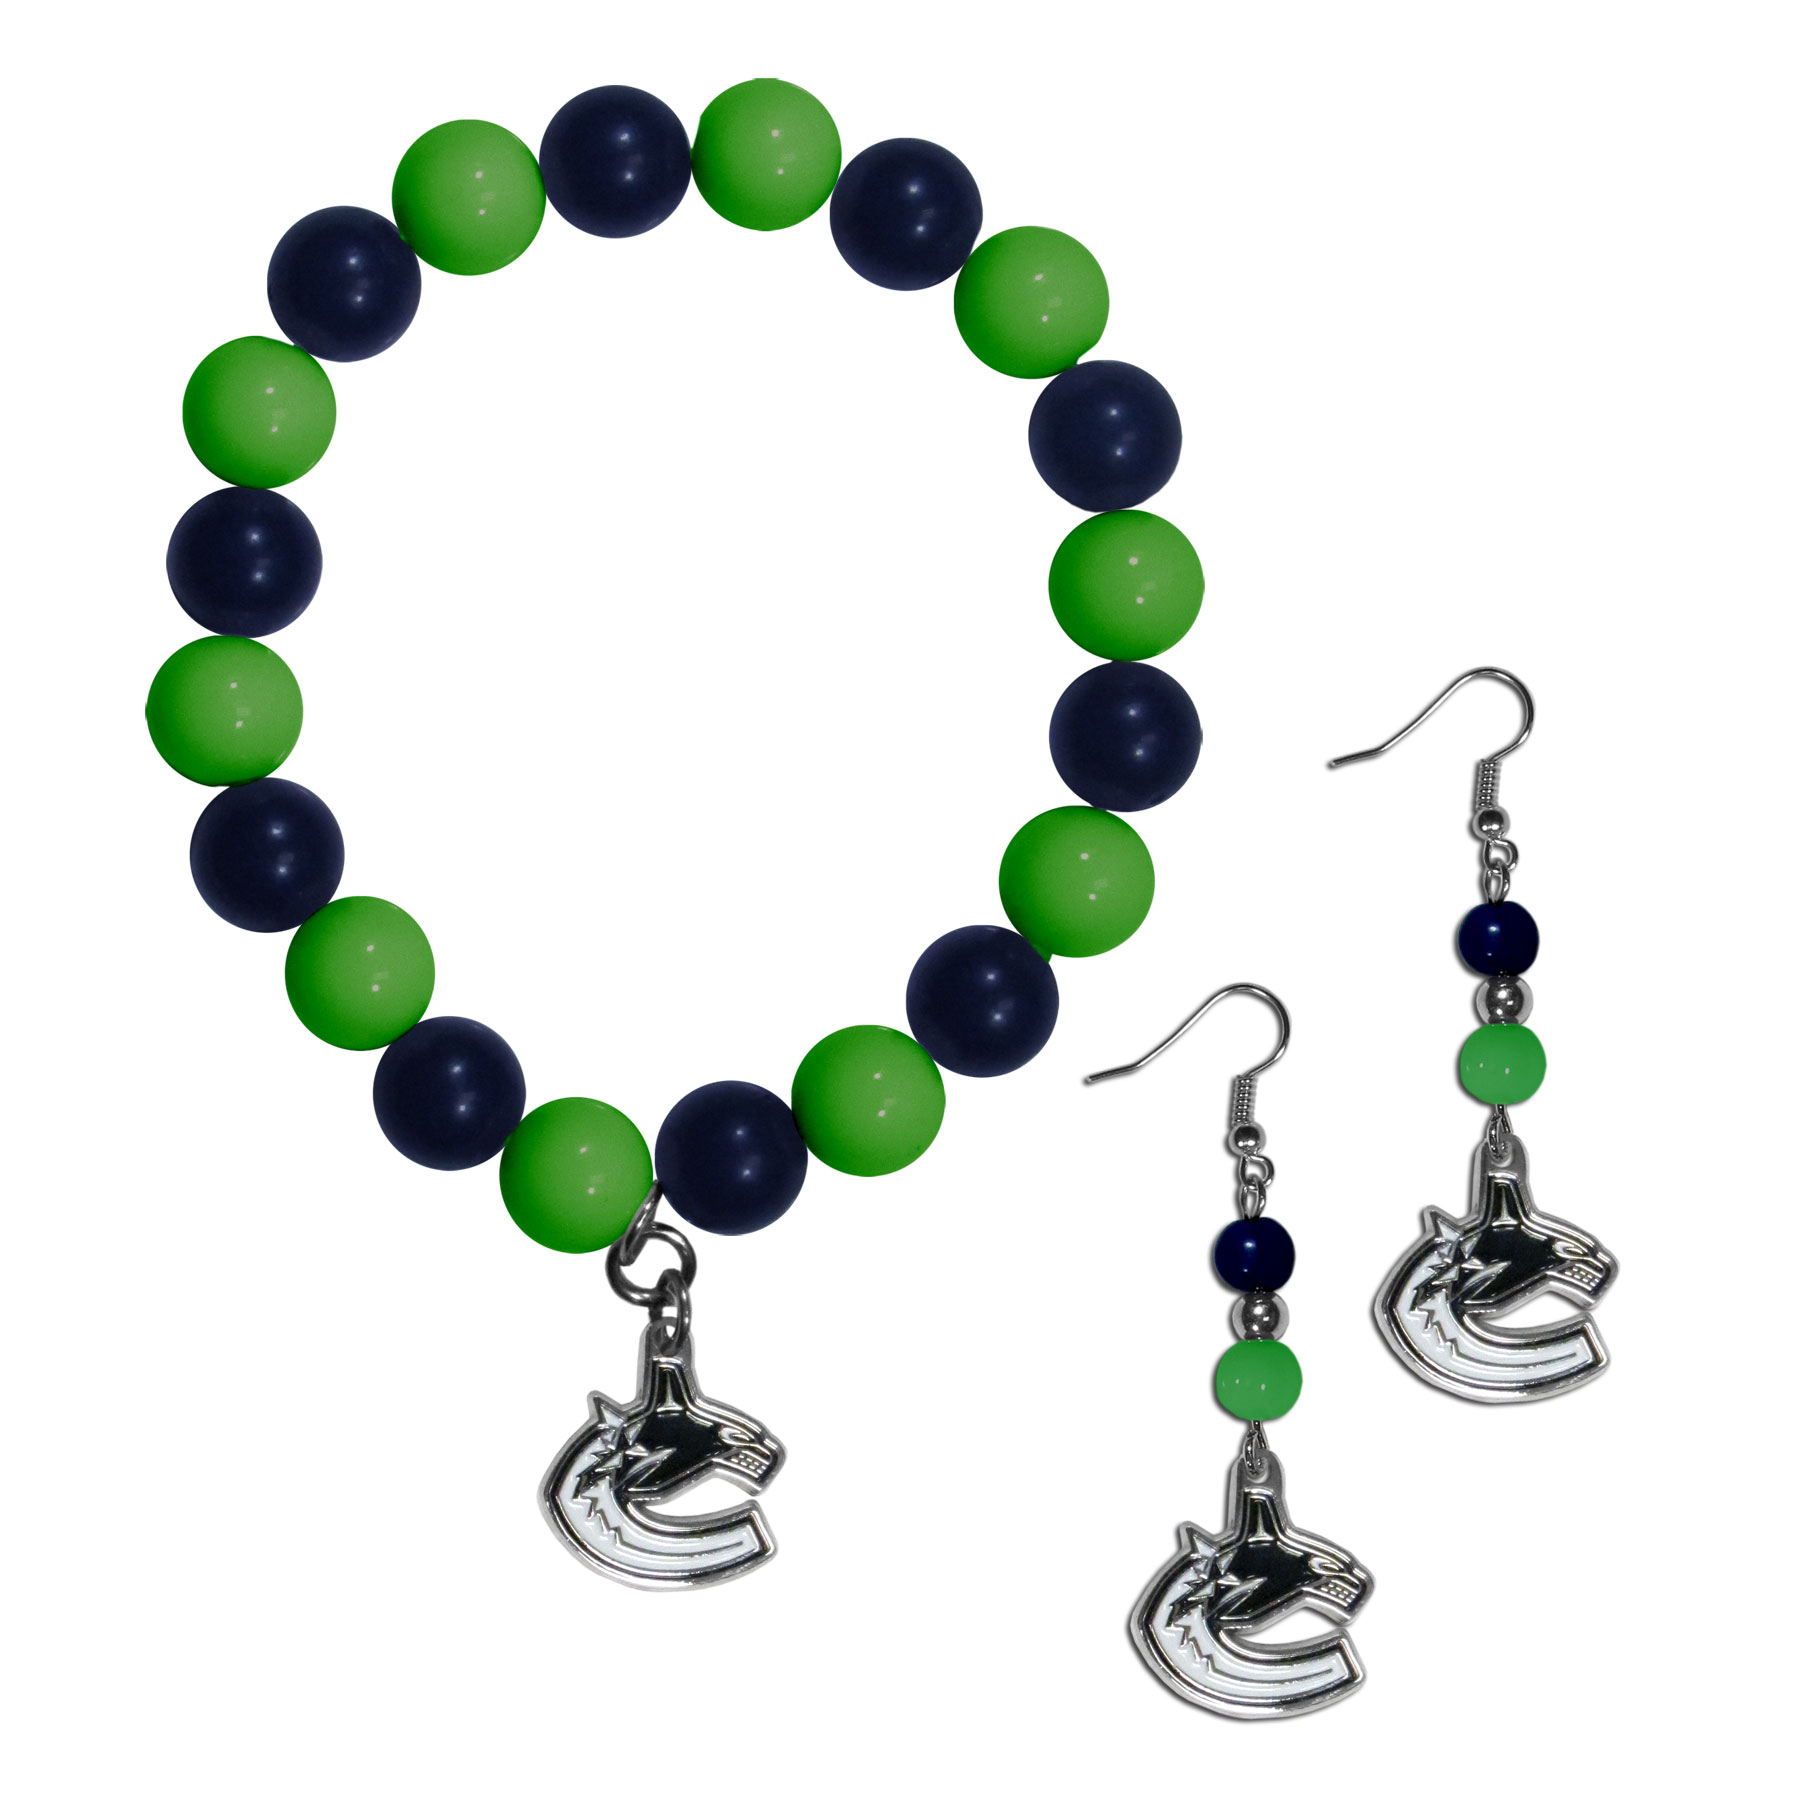 Vancouver Canucks® Fan Bead Earrings and Bracelet Set - This fun and colorful Vancouver Canucks® fan bead jewelry set is fun and casual with eye-catching beads in bright team colors. The fashionable dangle earrings feature a team colored beads that drop down to a carved and enameled charm. The stretch bracelet has larger matching beads that make a striking statement and have a matching team charm. These sassy yet sporty jewelry pieces make a perfect gift for any female fan. Spice up your game-day outfit with these fun colorful earrings and bracelet that are also cute enough for any day.